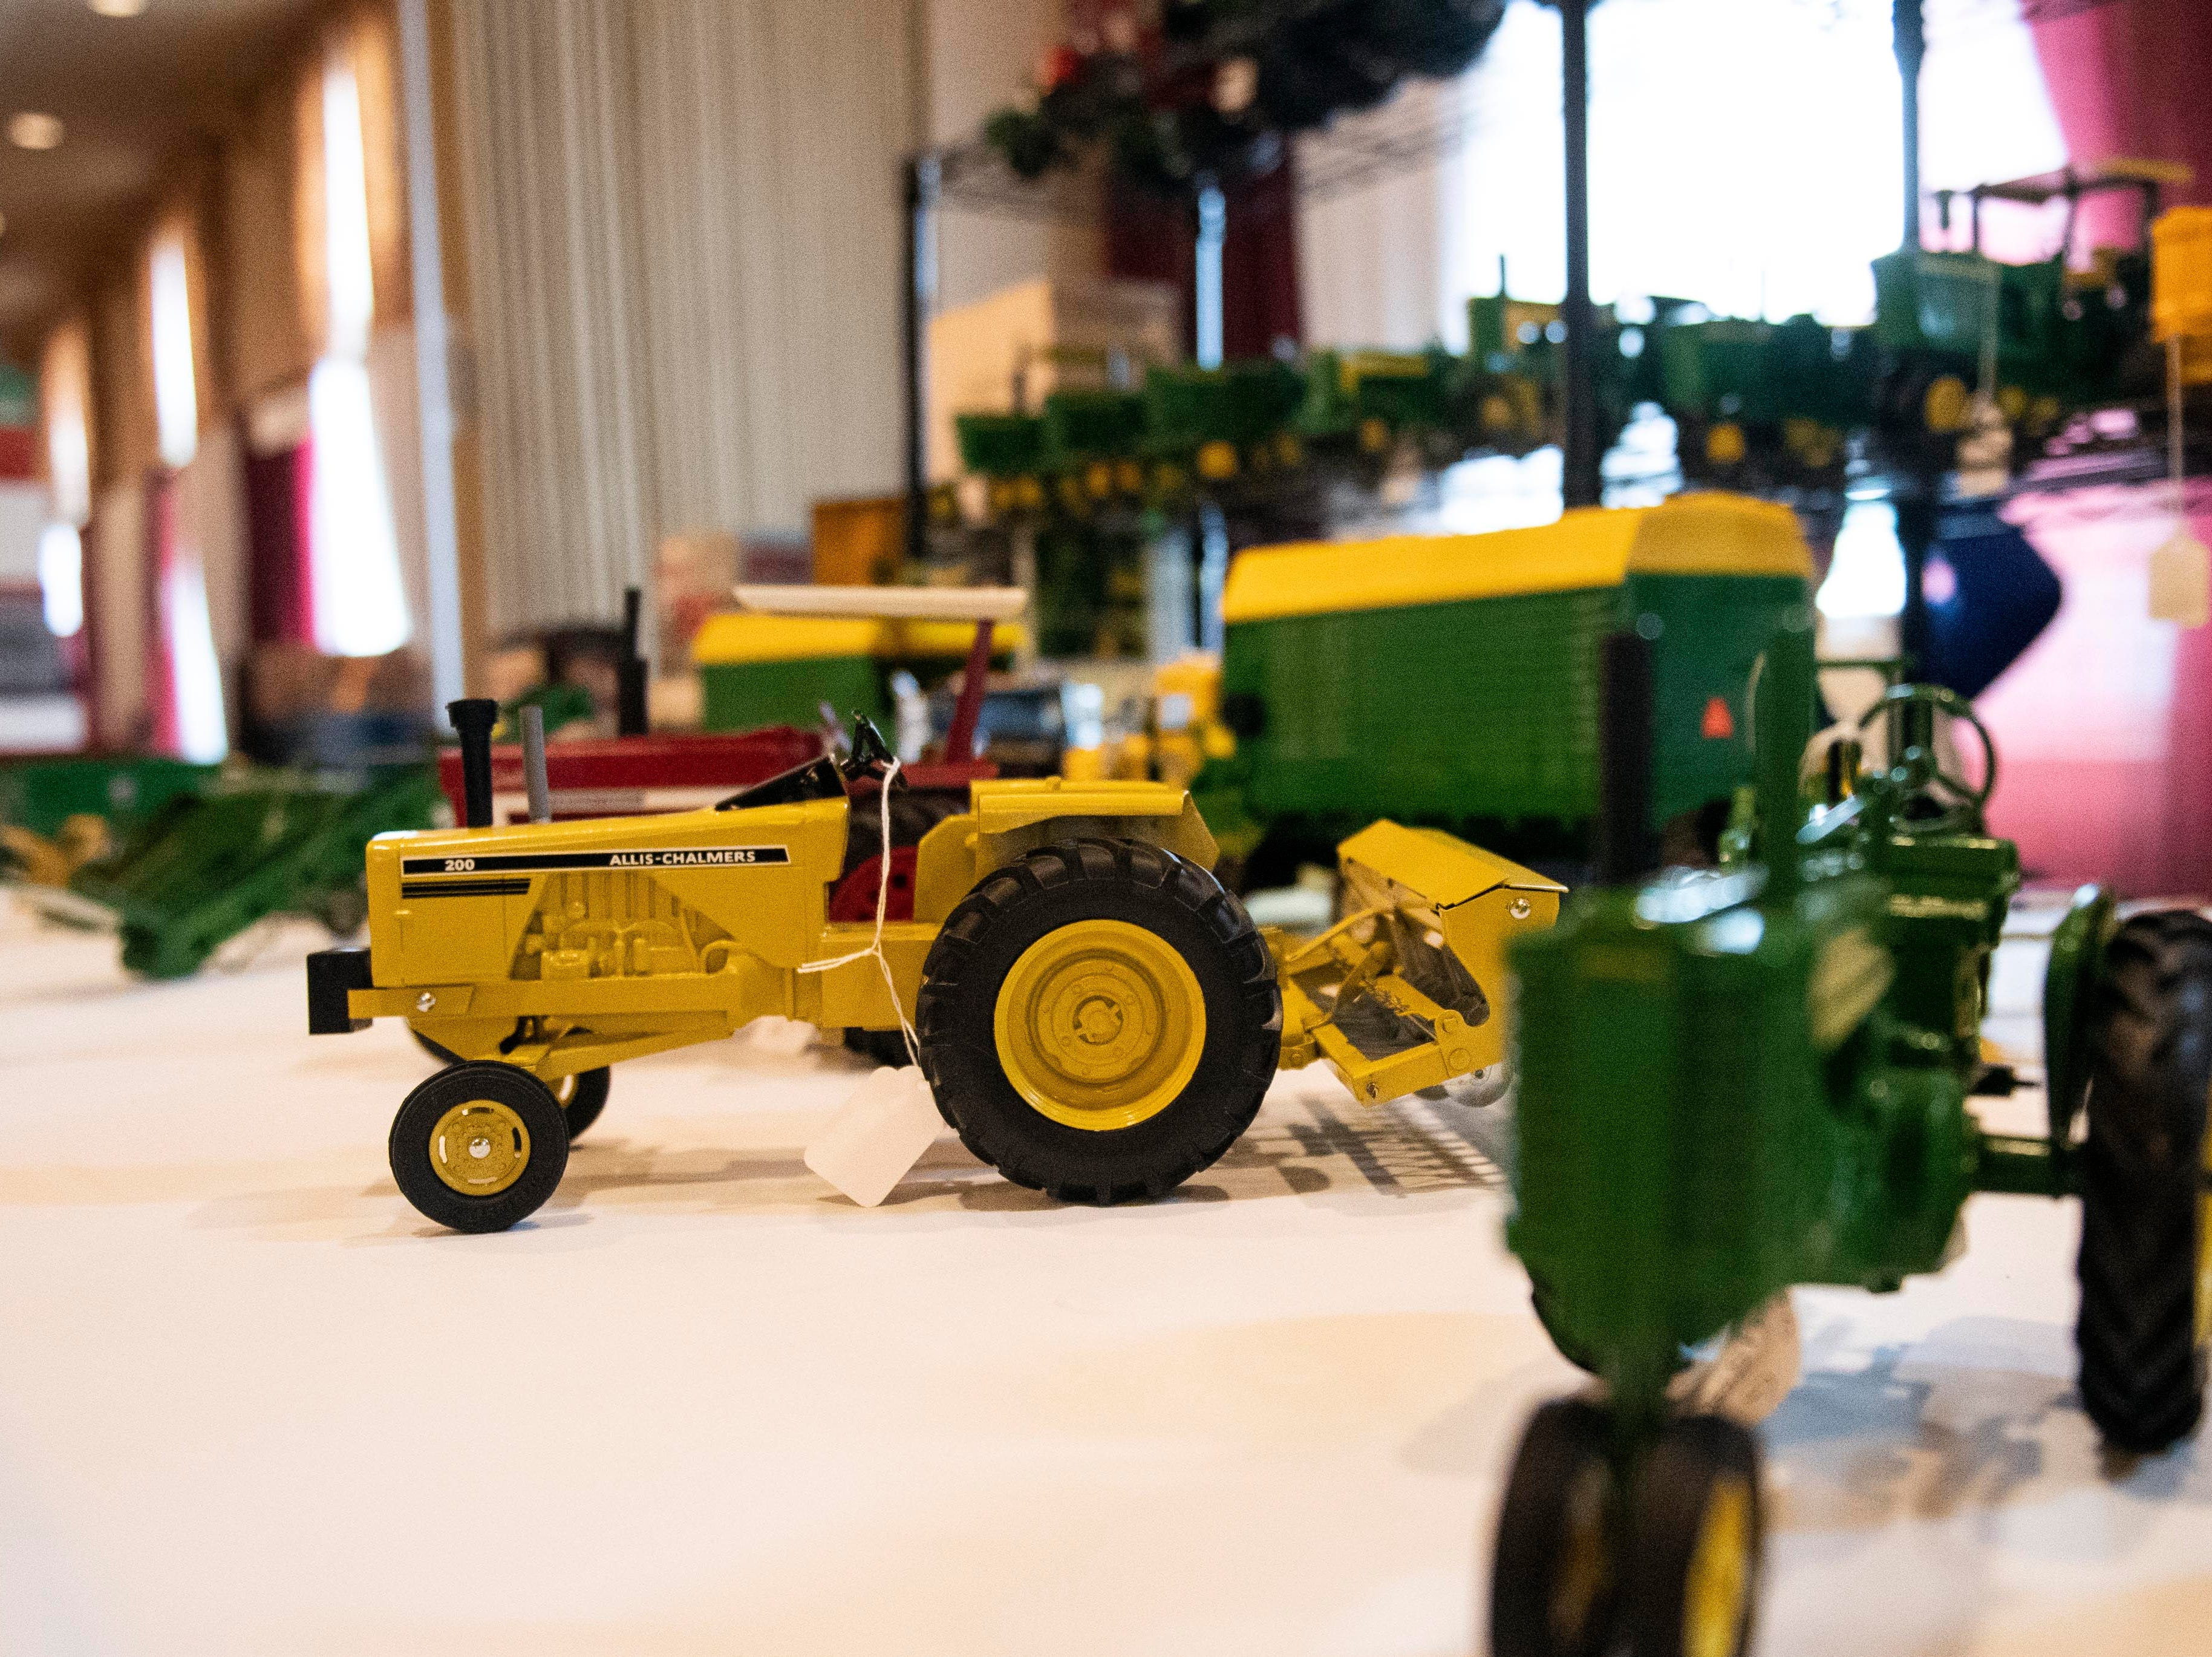 Tractor figurines sit on display in the toy building at the Keystone Farm Show, Tuesday, Jan. 8, 2019. The Keystone Farm Show has nearly 420 vendors and is expected to bring up to 15,000 people to the York Expo Center. The show runs through Thursday, Jan. 10.